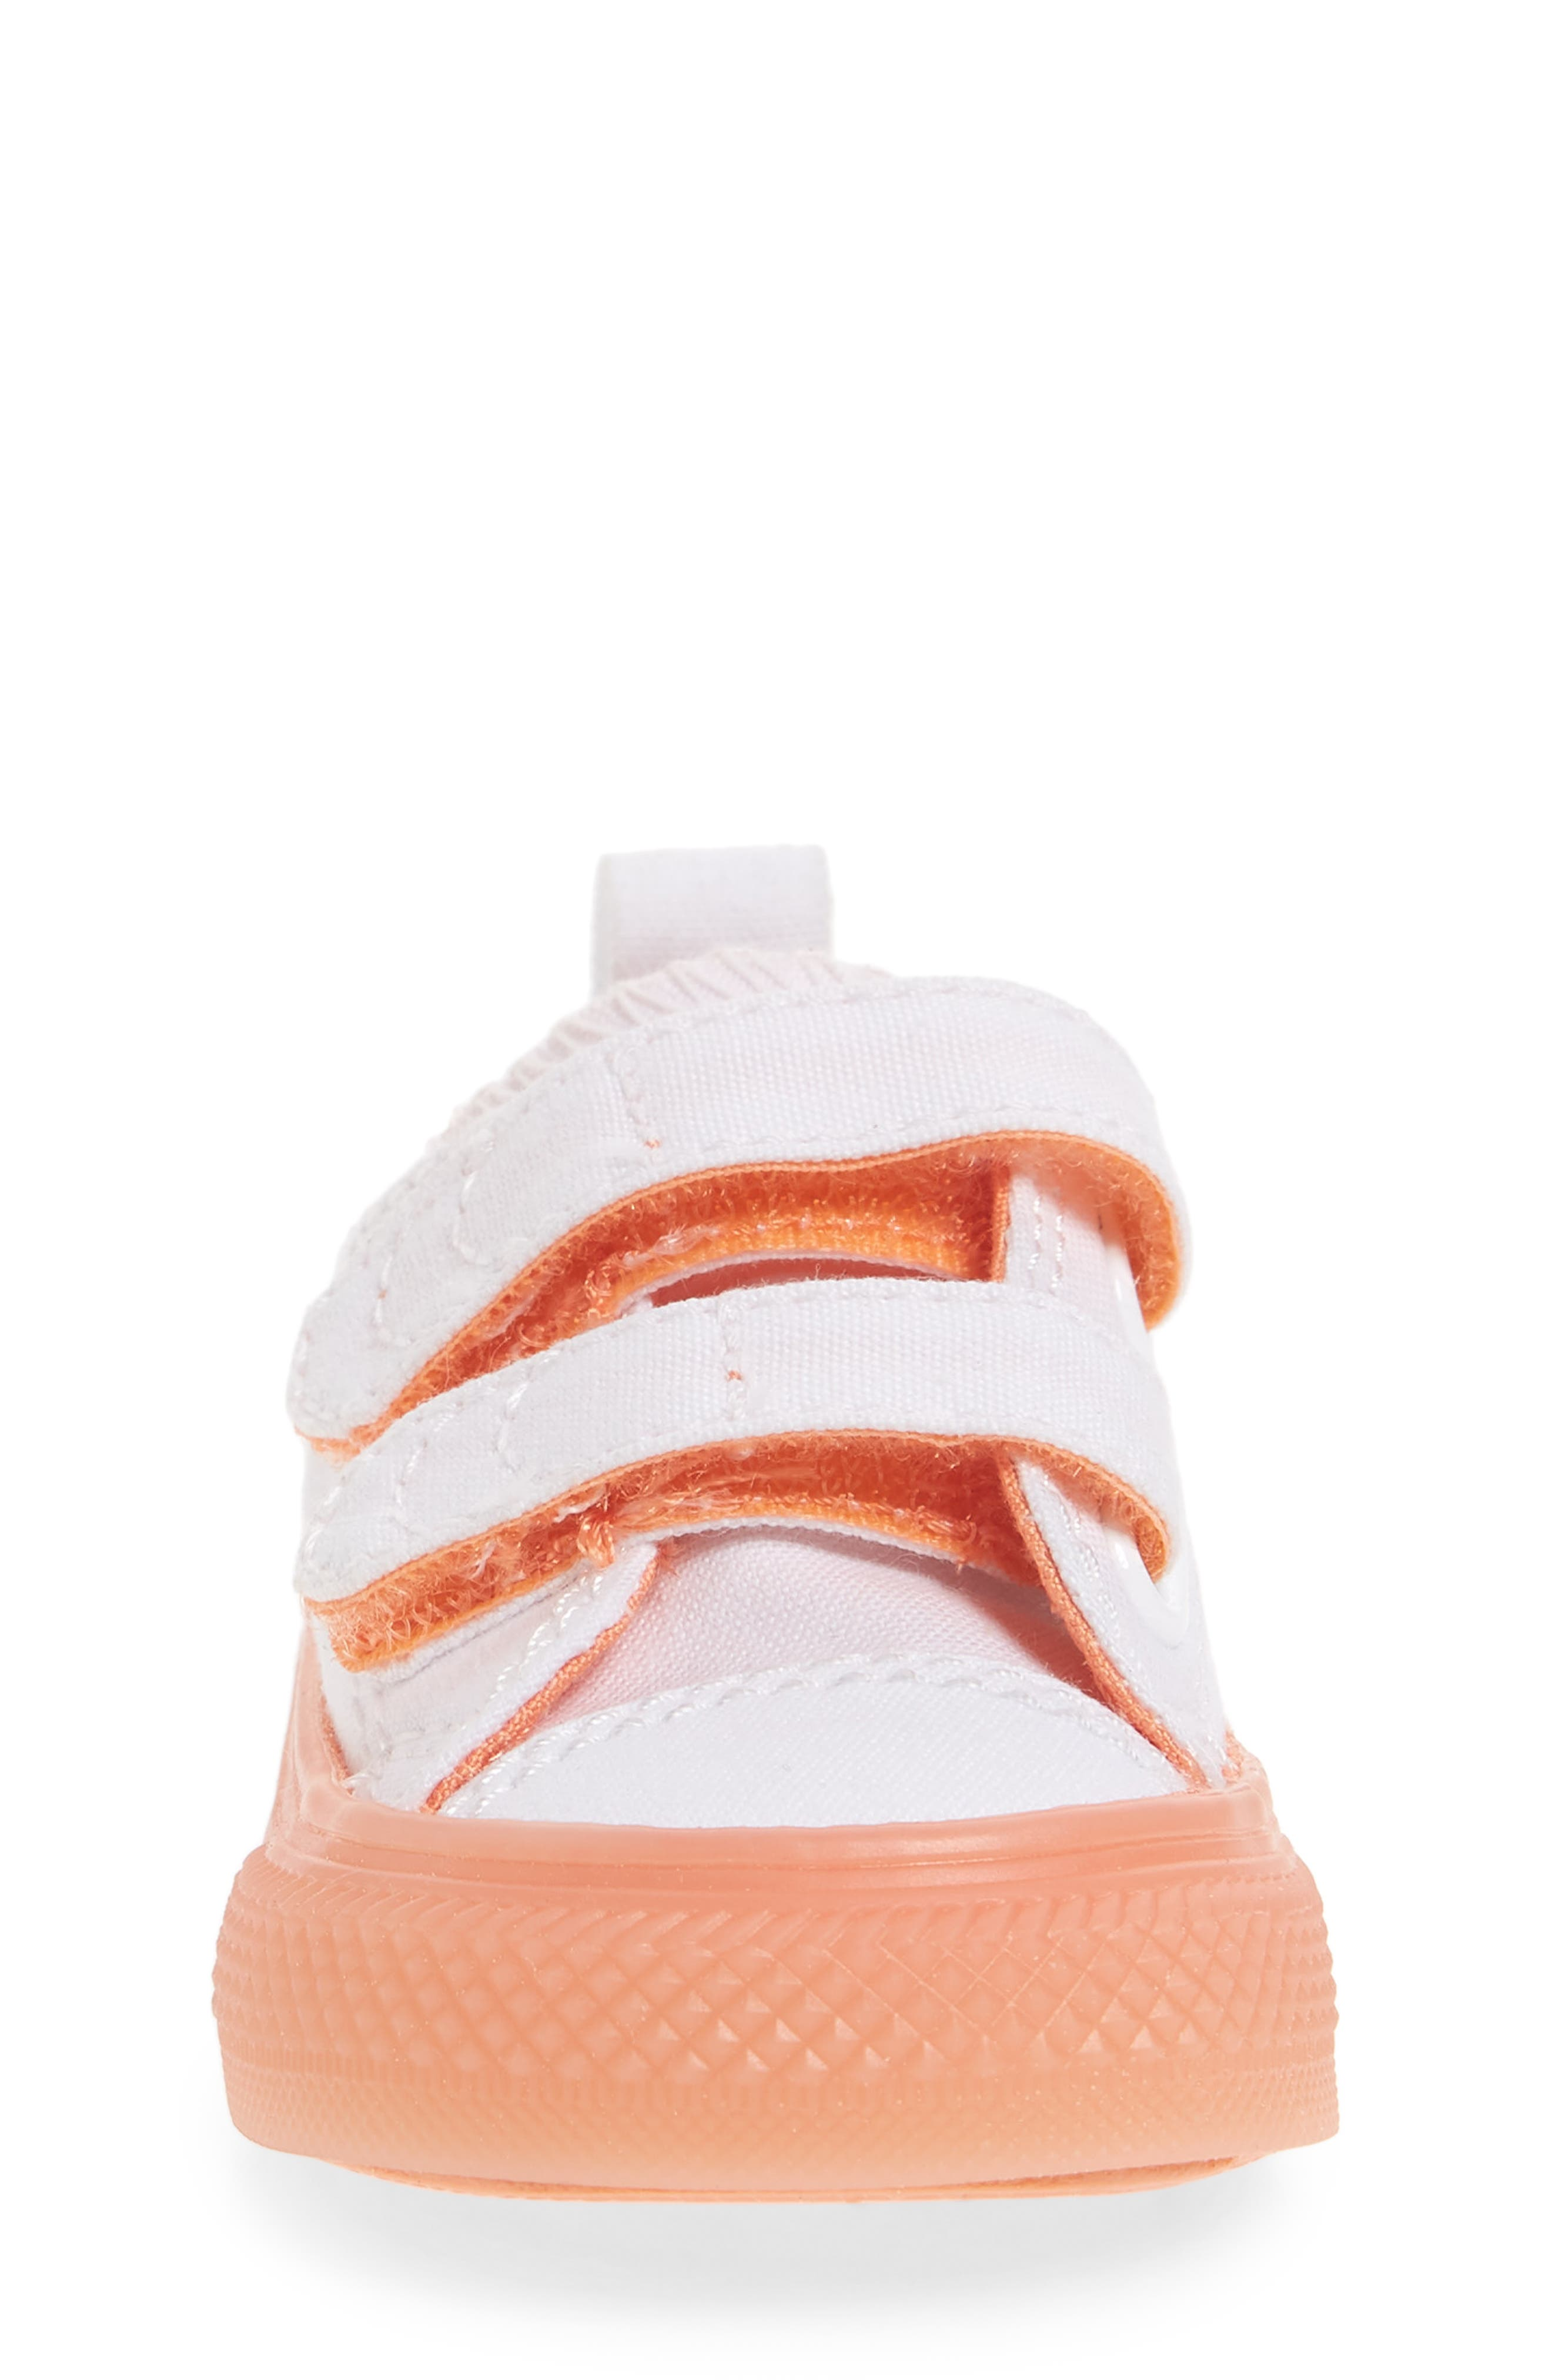 Chuck Taylor<sup>®</sup> All Star<sup>®</sup> Jelly Sneaker,                             Alternate thumbnail 4, color,                             808